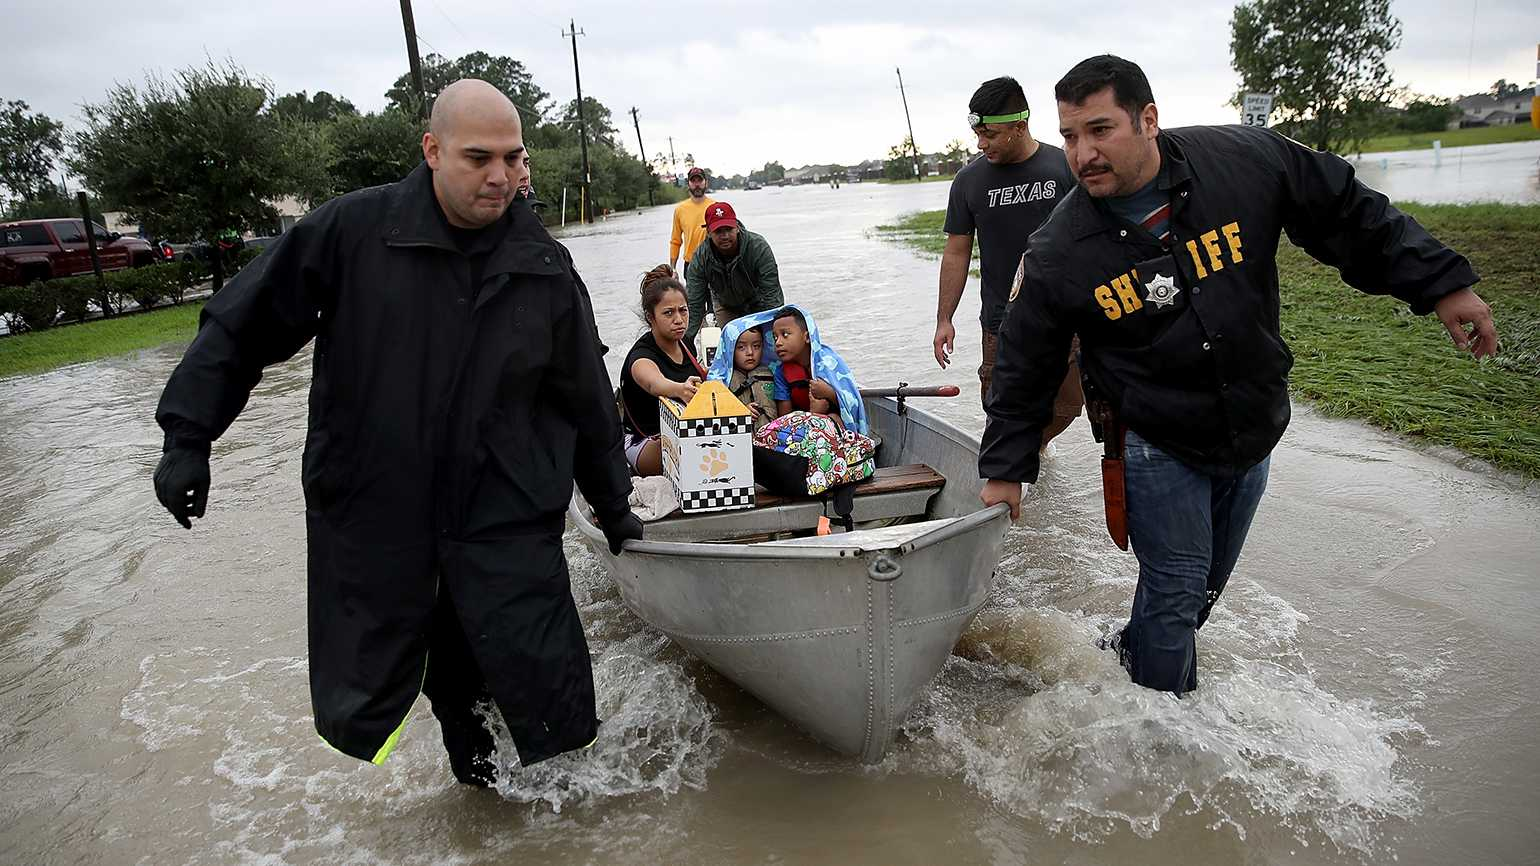 A family is evacuated from its home after severe flooding following Hurricane Harvey in north Houston